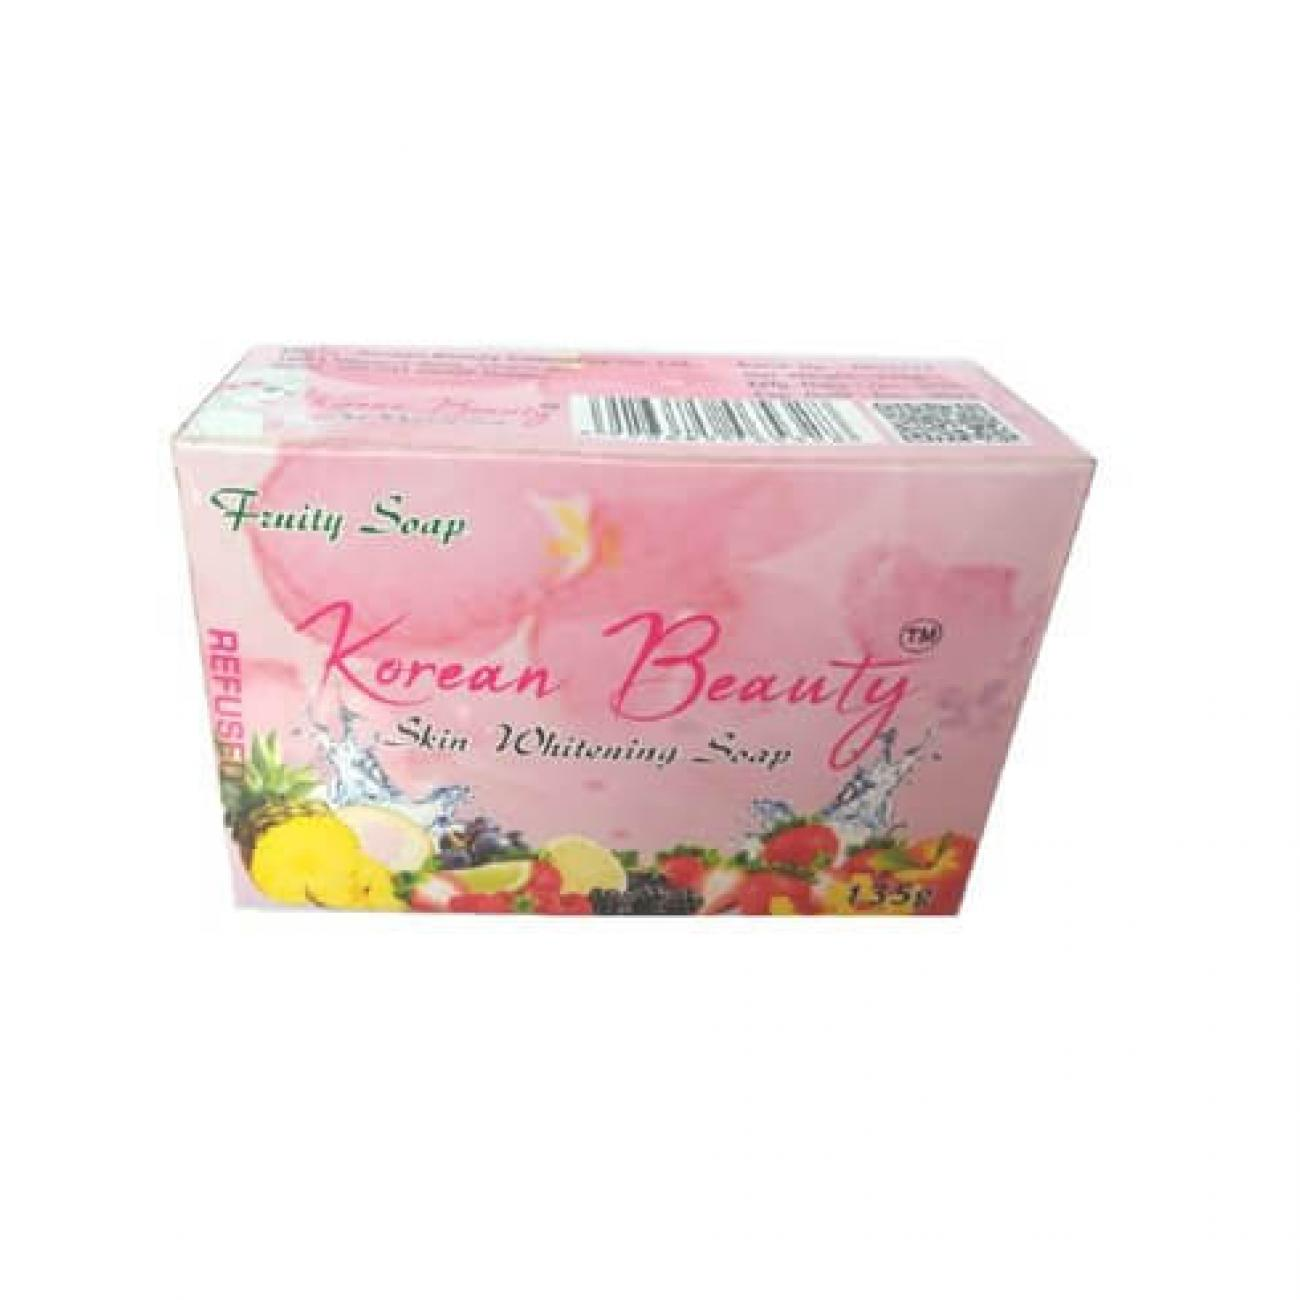 Herbal Korean beauty whitening soap